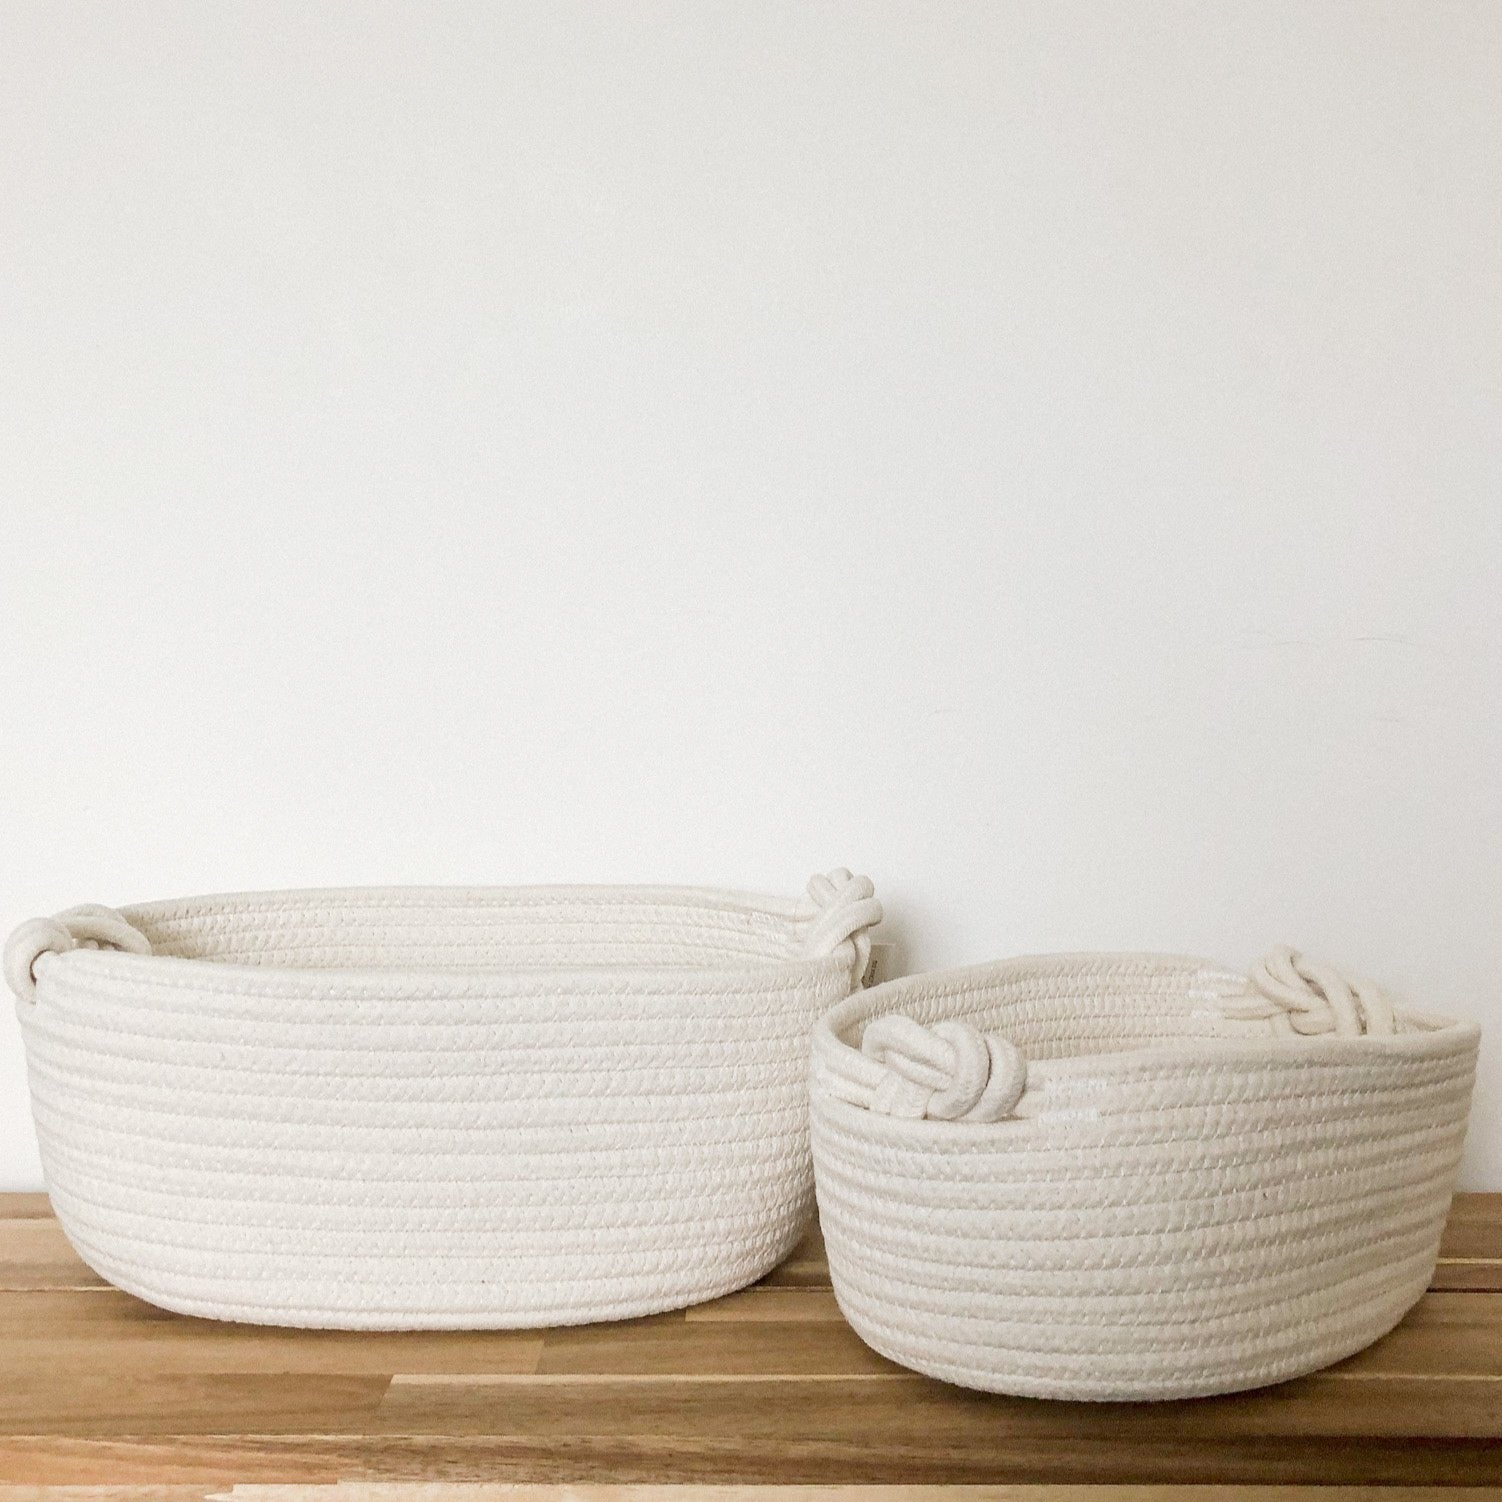 White Knot Handle Rope Baskets (Set of 2)